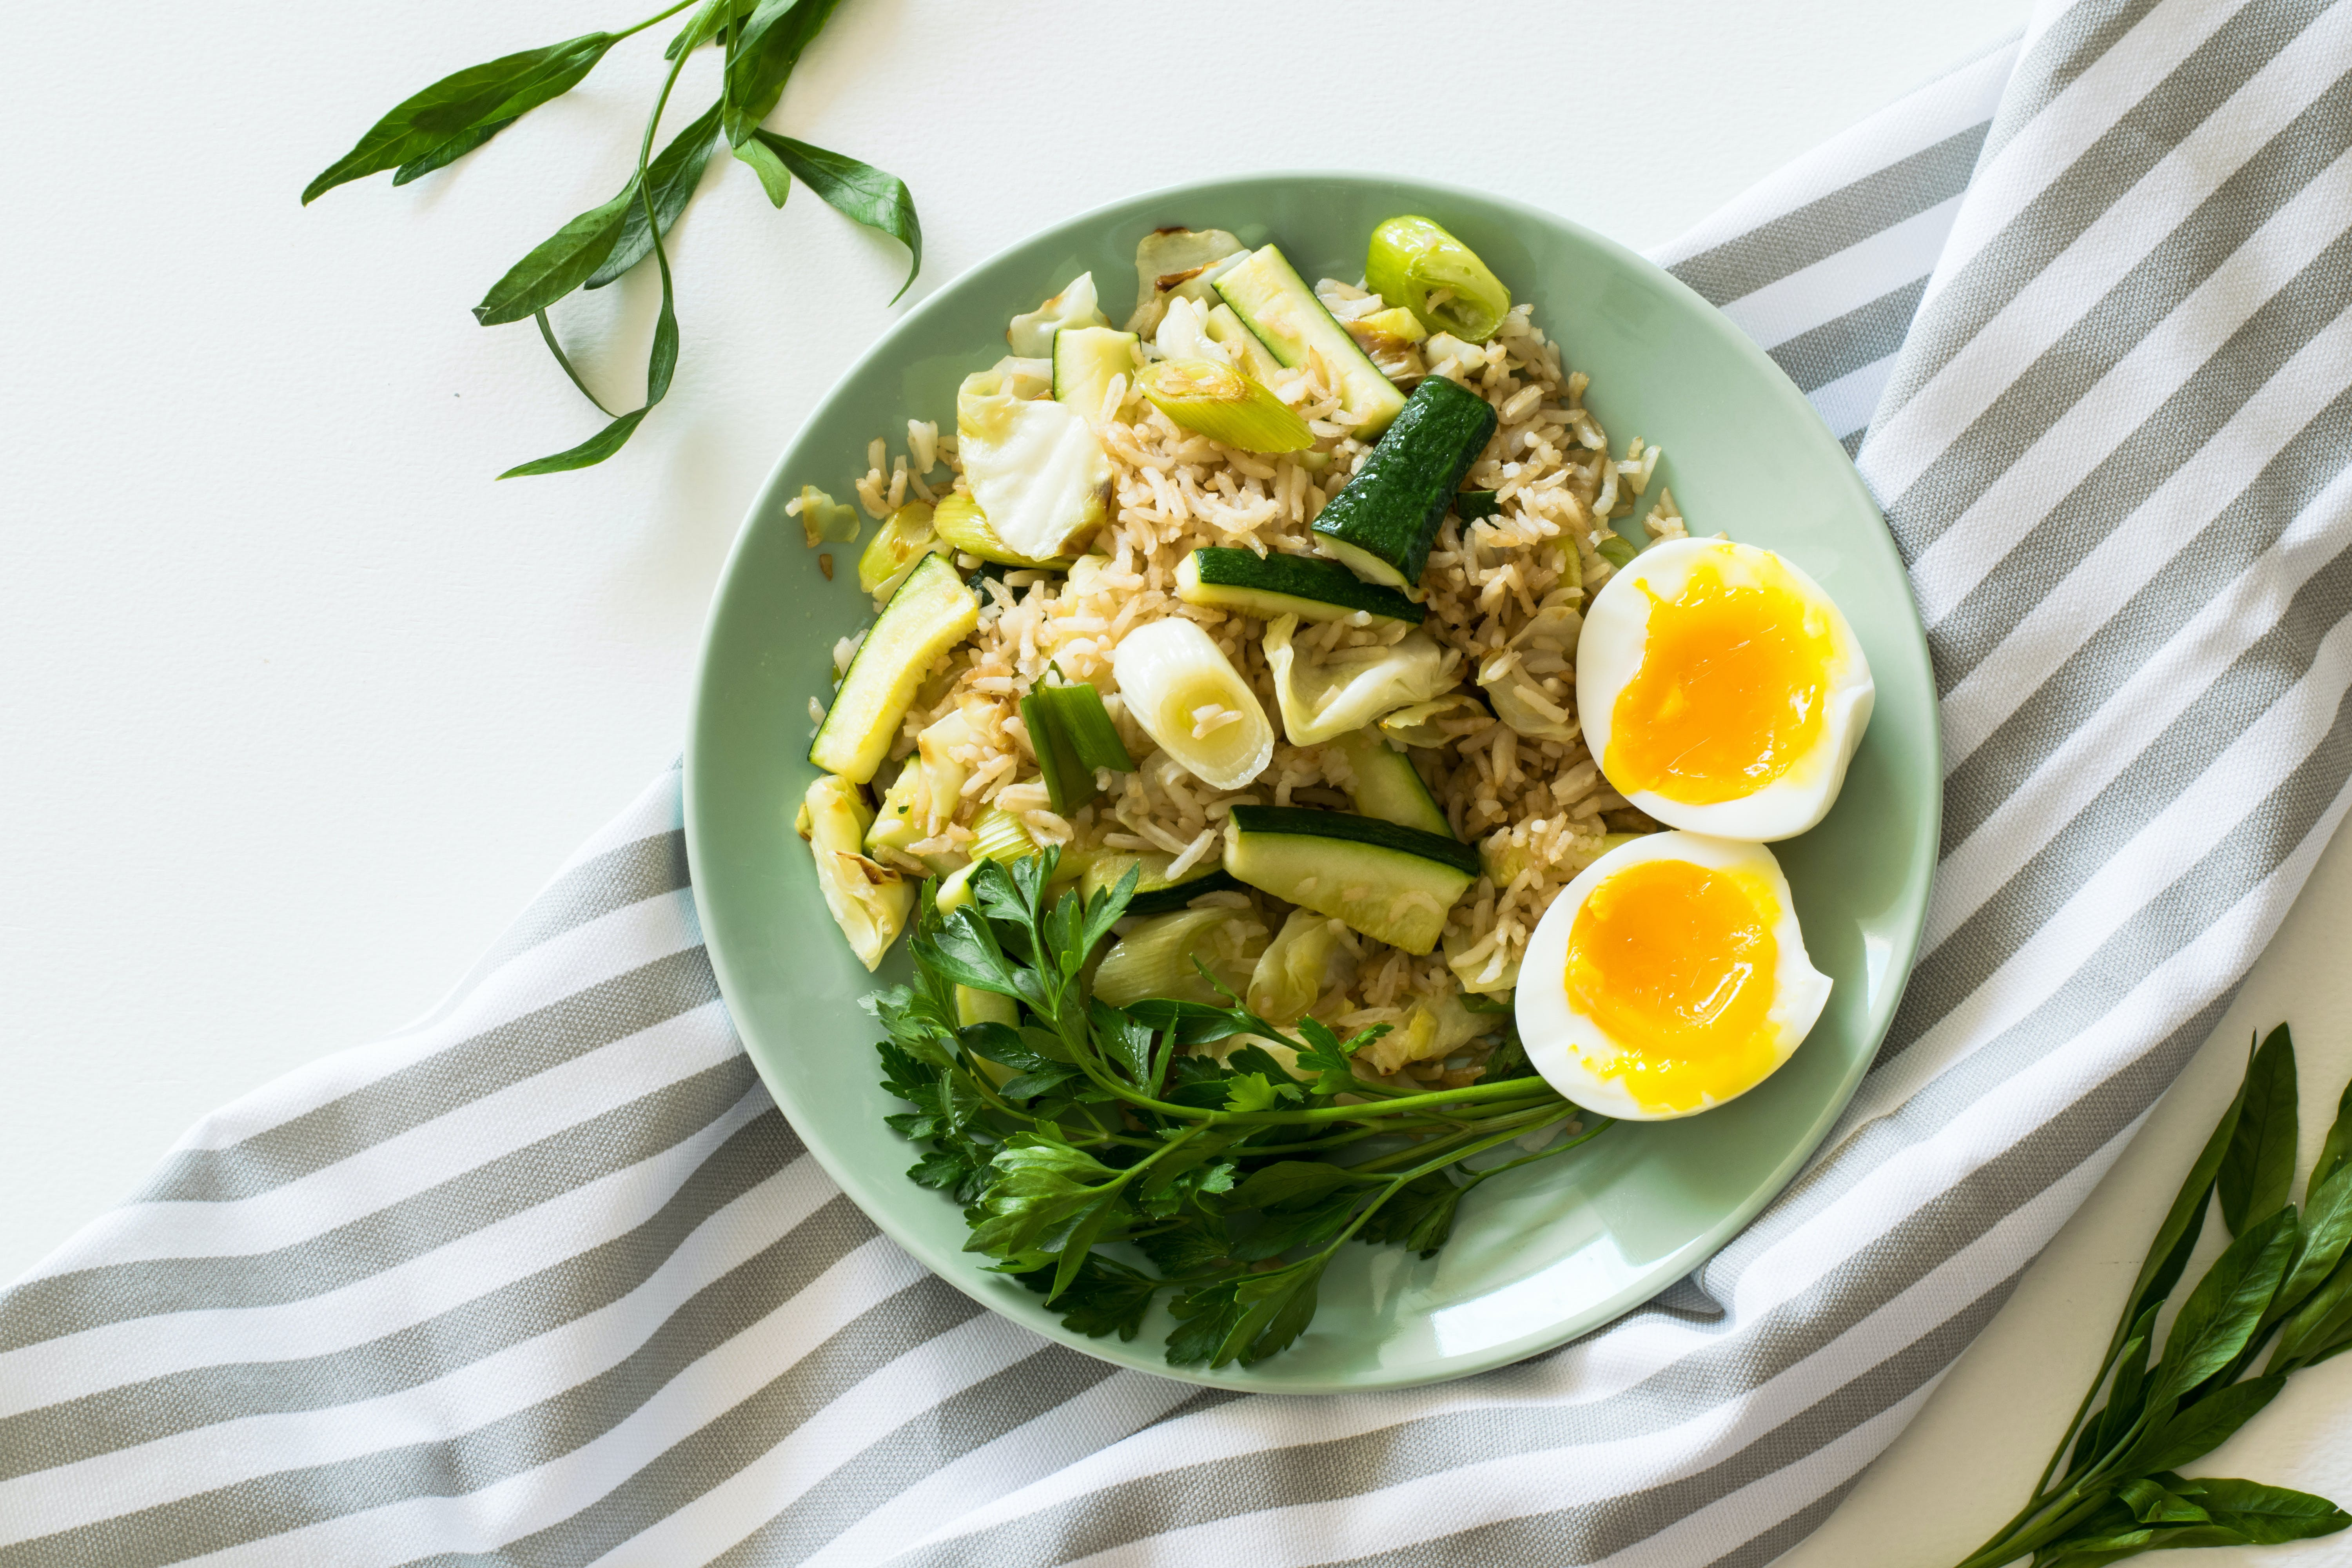 Fried Rice With Poached Egg, Zucchini, And Celery on Round Green Ceramic Plate